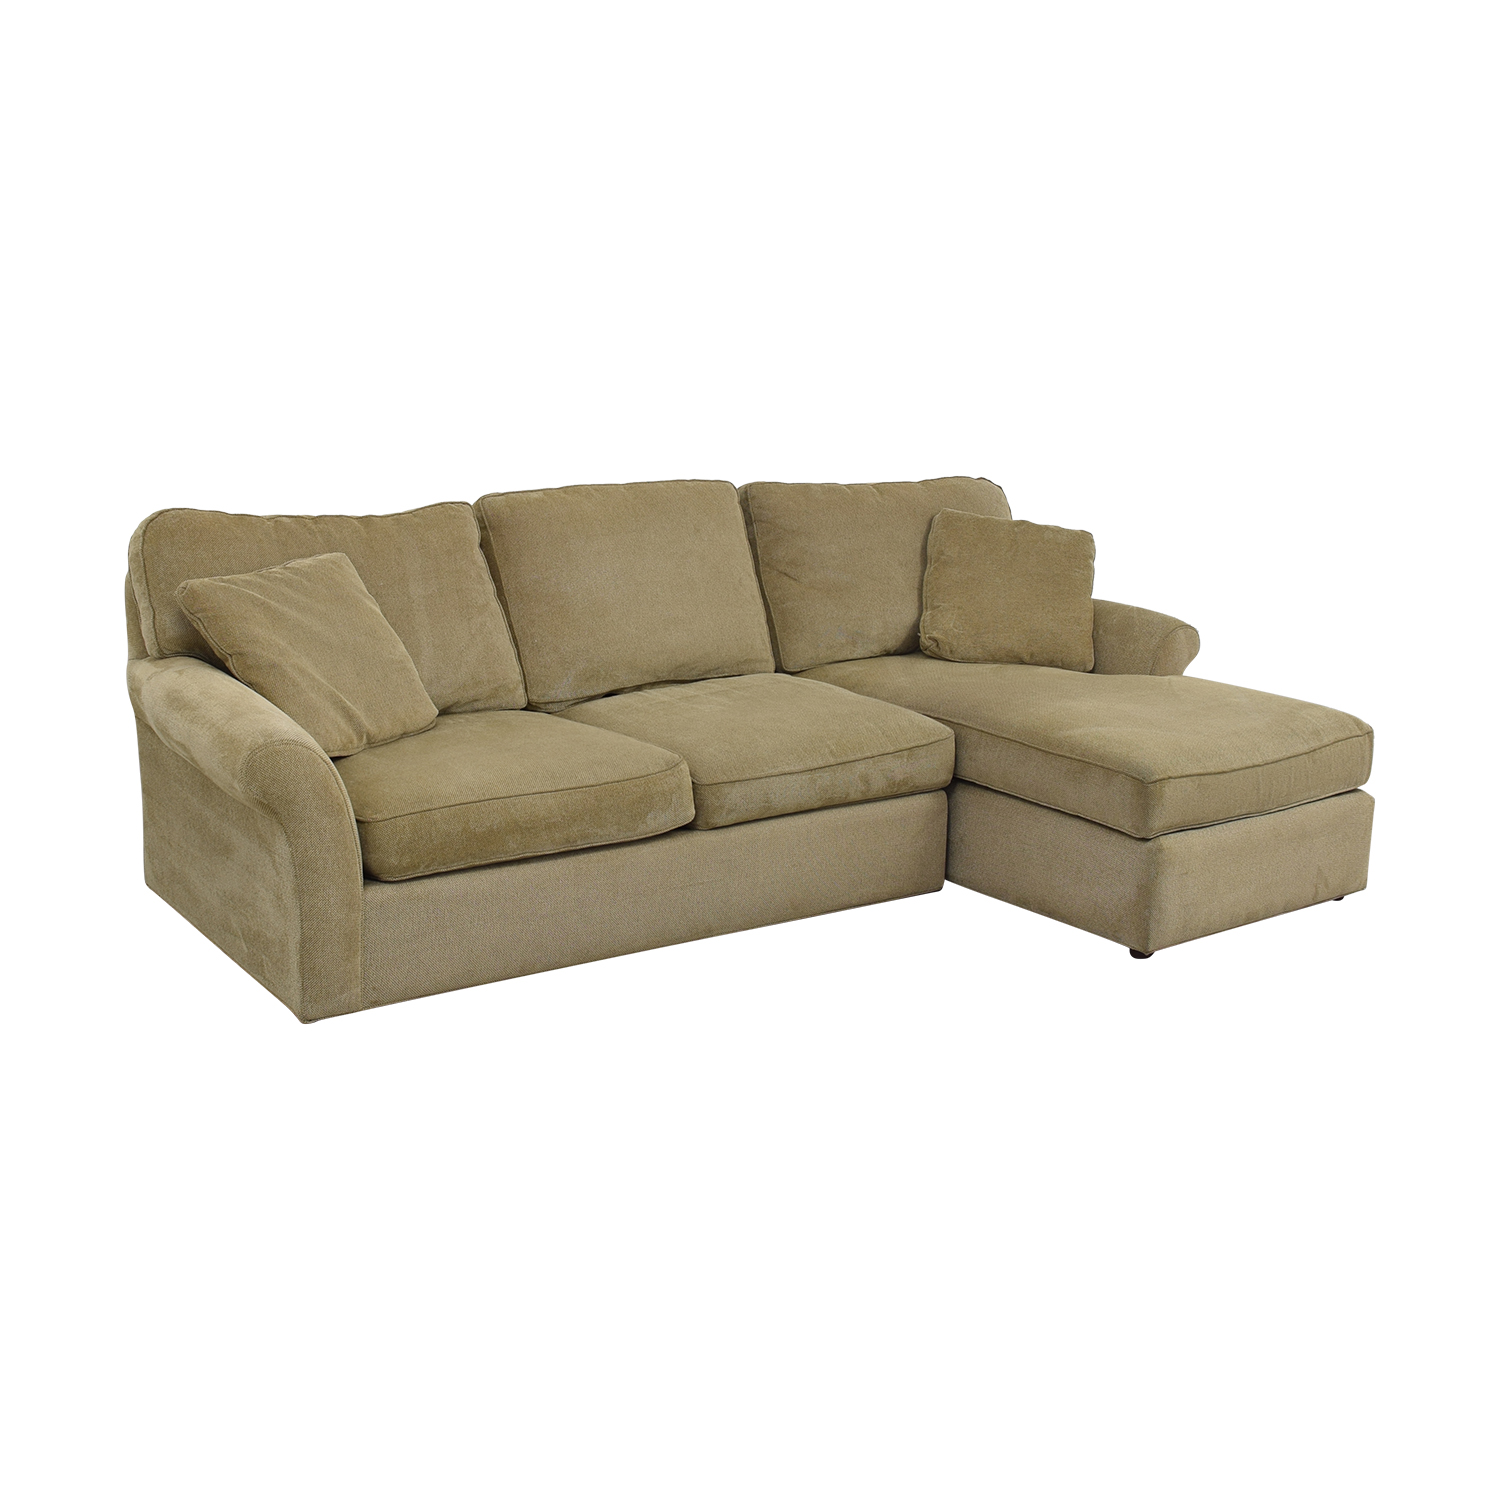 Macy's Macy's Beige Chaise Sectional nyc